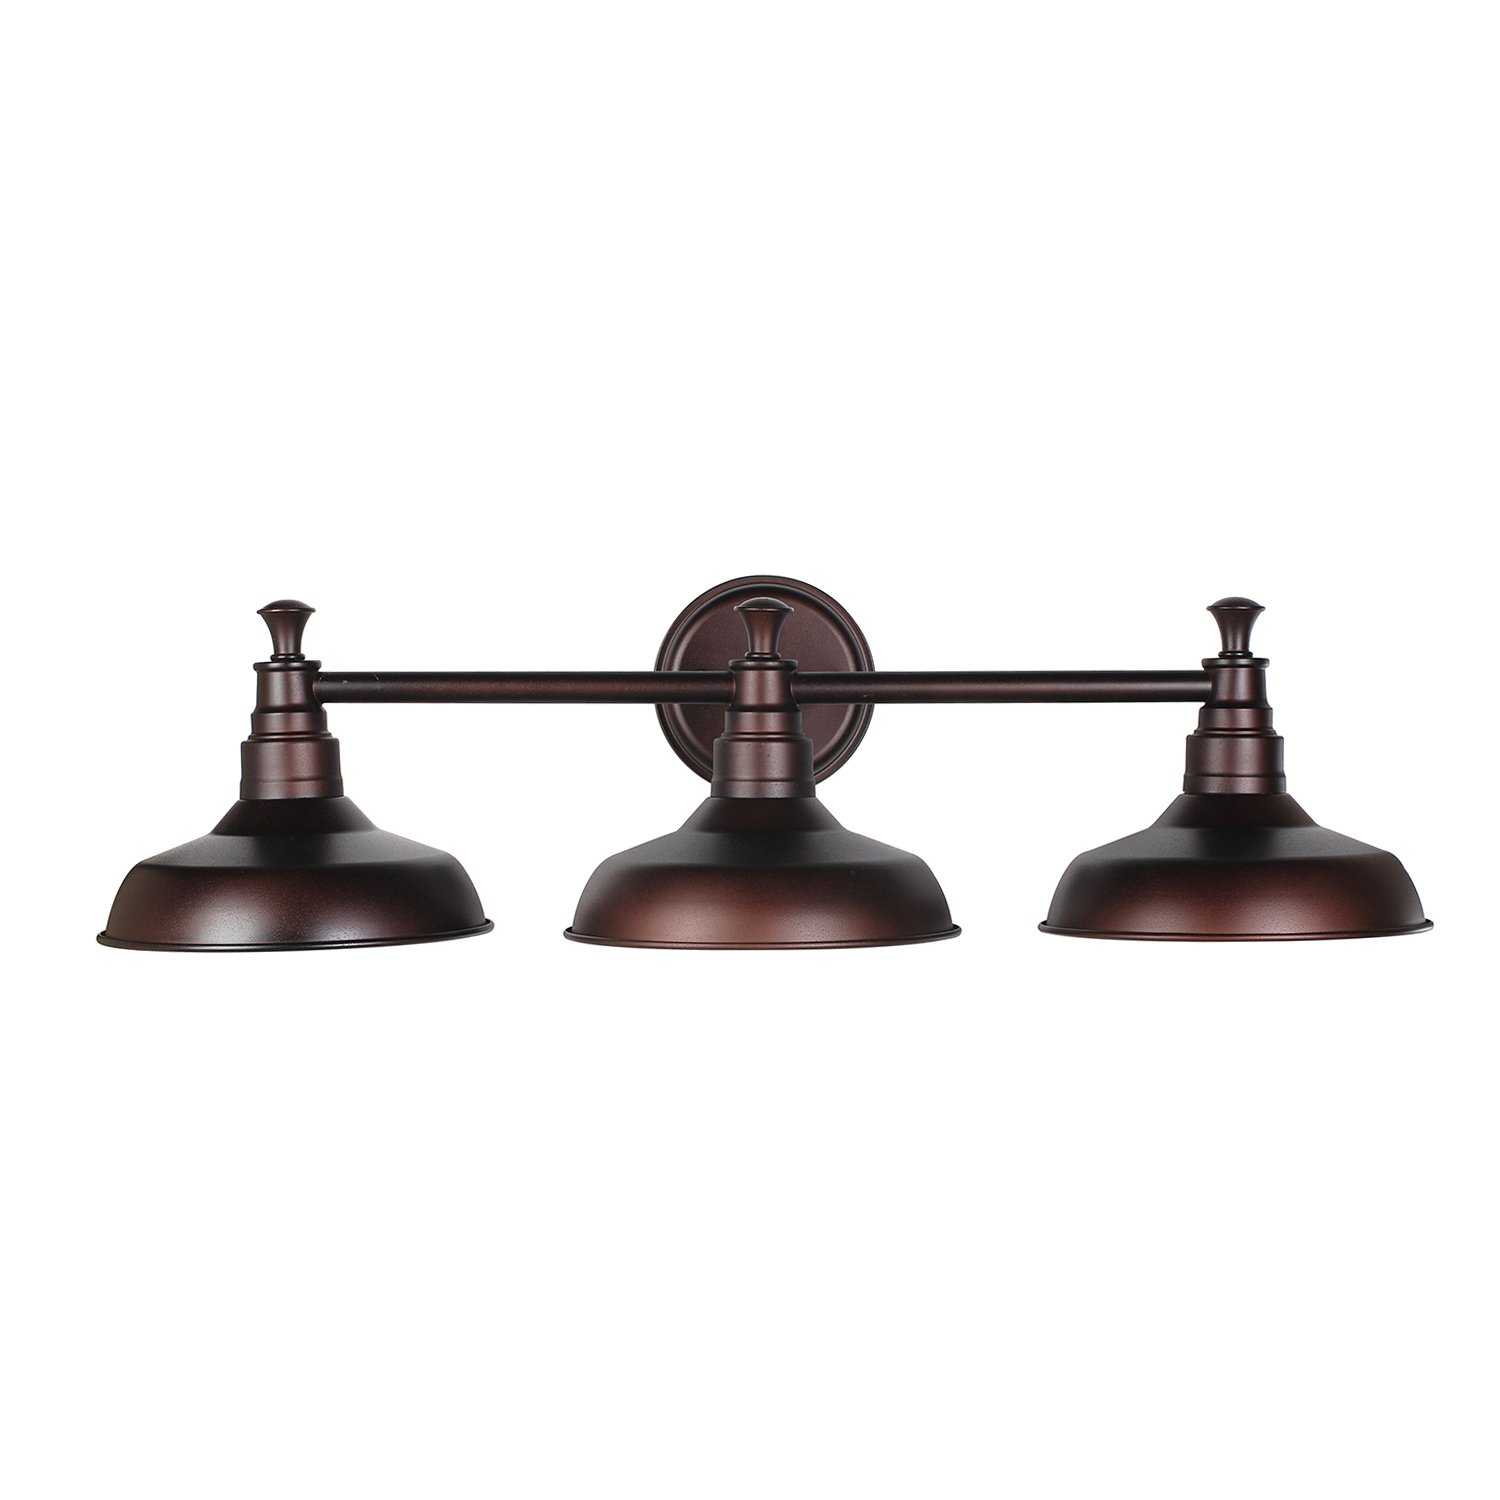 Design House 520320 Kimball 3 Light Vanity Light, Bronze